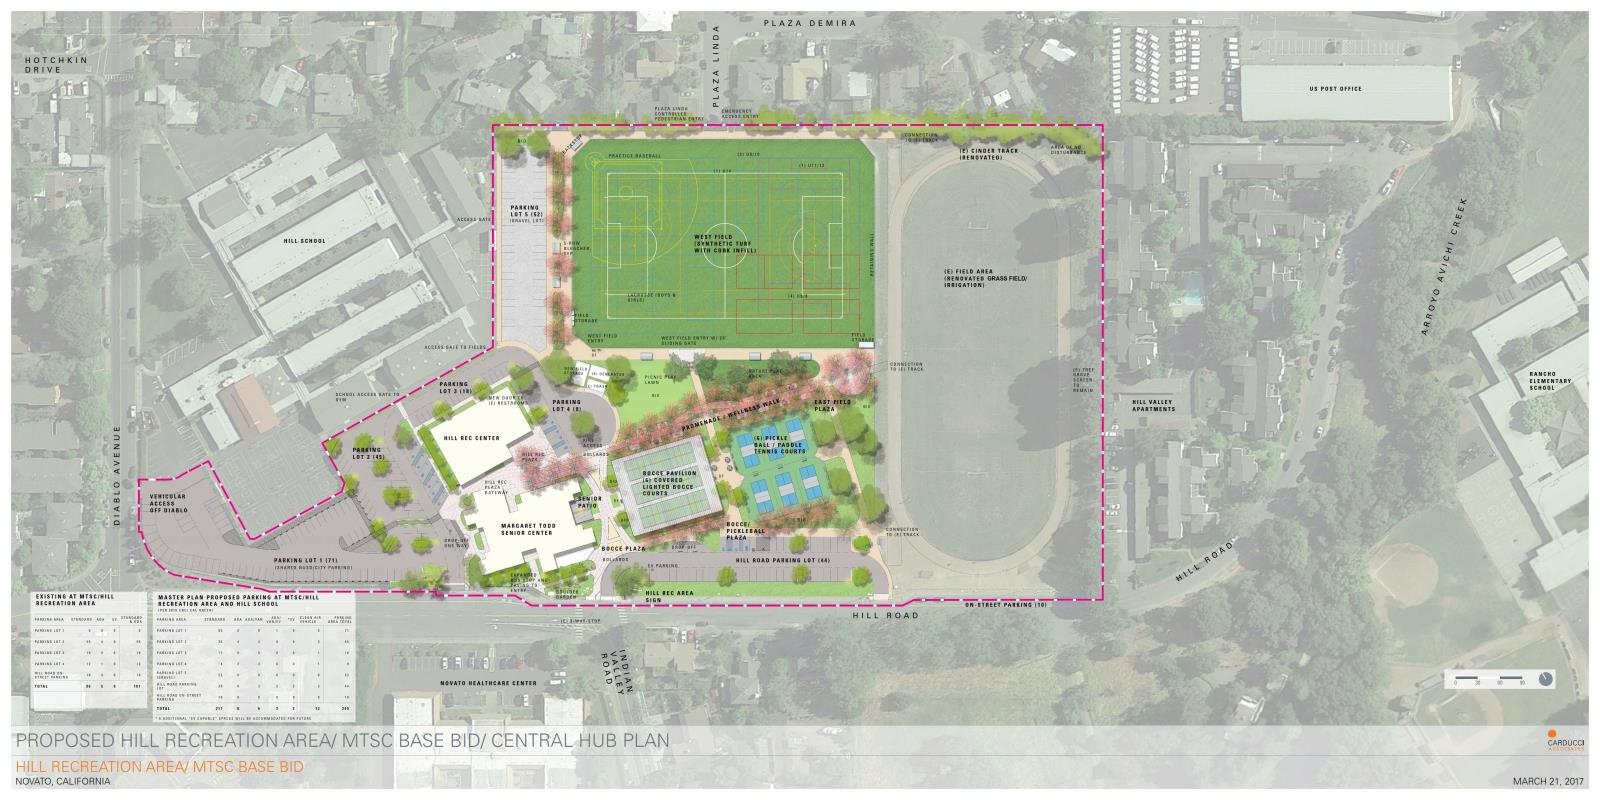 Hill Recreation Area CONCEPT PLAN BB-lg